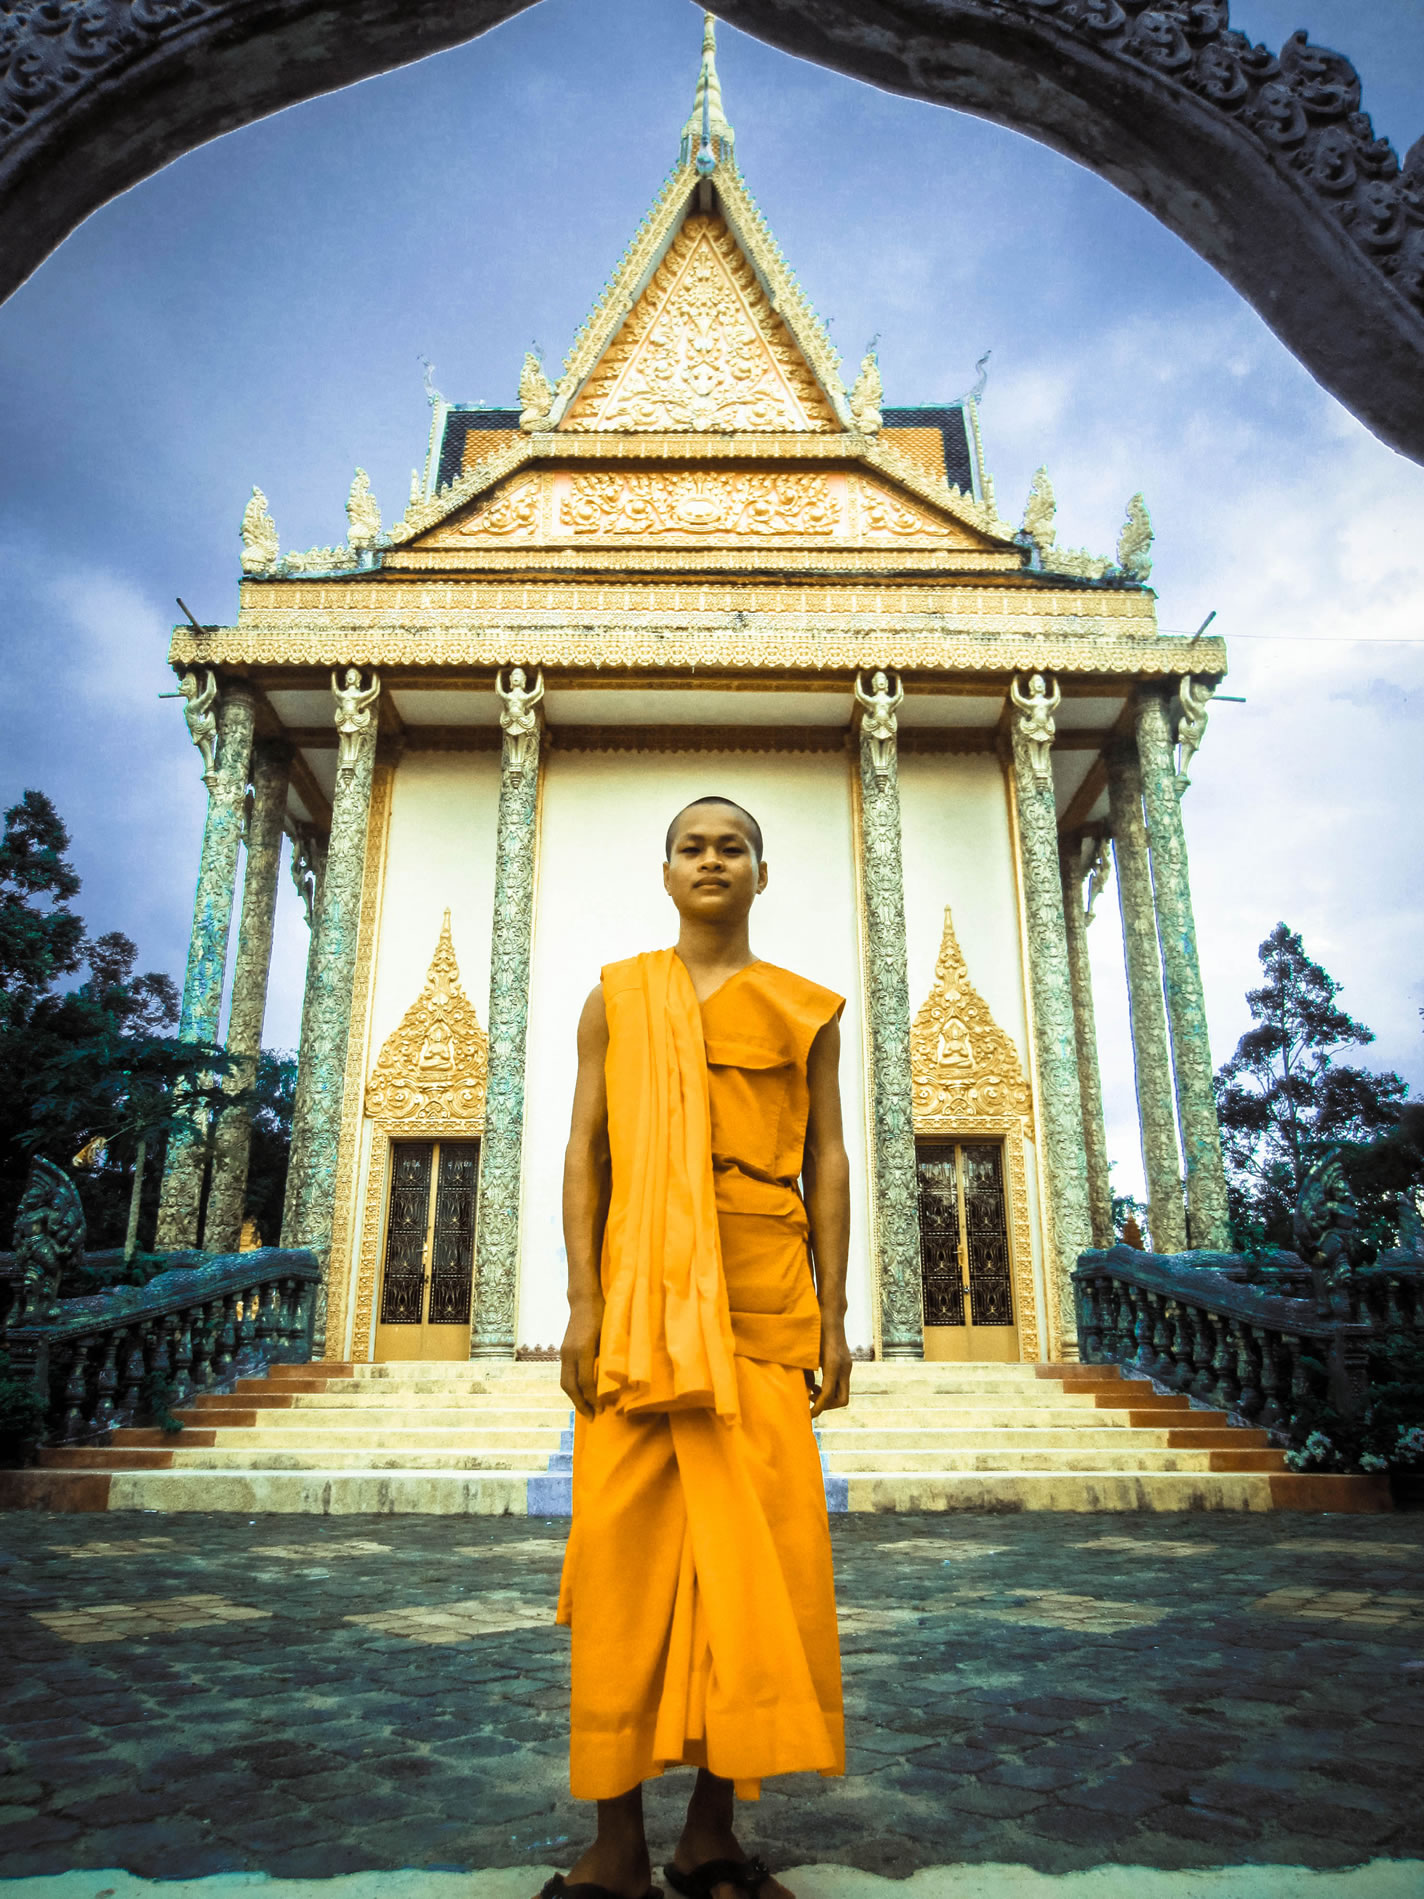 This monk at Wat Treuy Koh said that when the Khmer Rouge was a tit's most powerful, they were still afraid of the mystic powers of the head monk here, so they stayed away from the area.